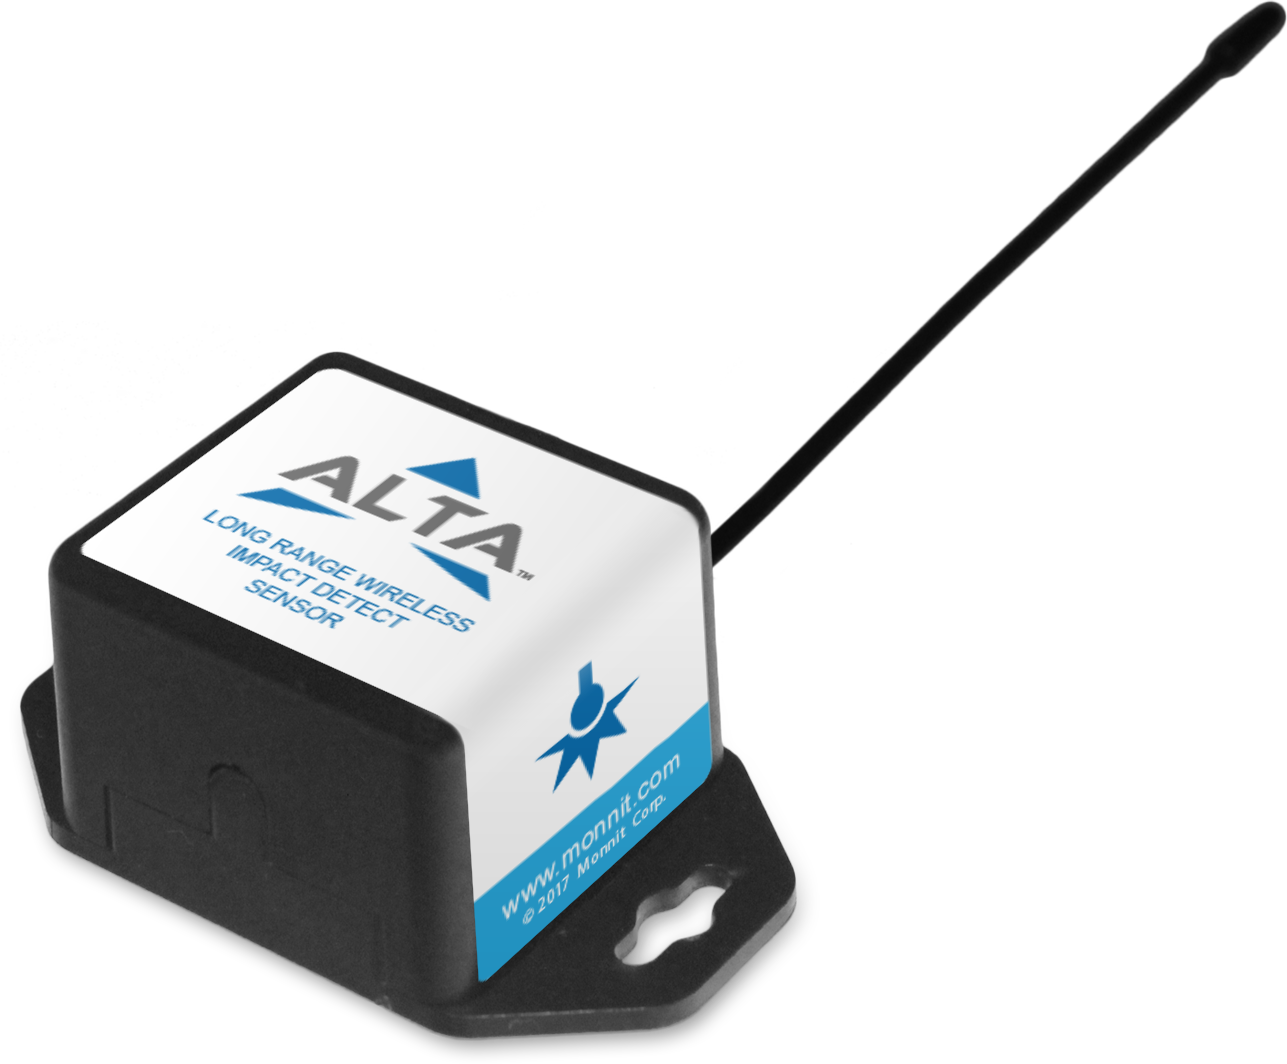 Wireless Accelerometer – Impact Detect Sensor